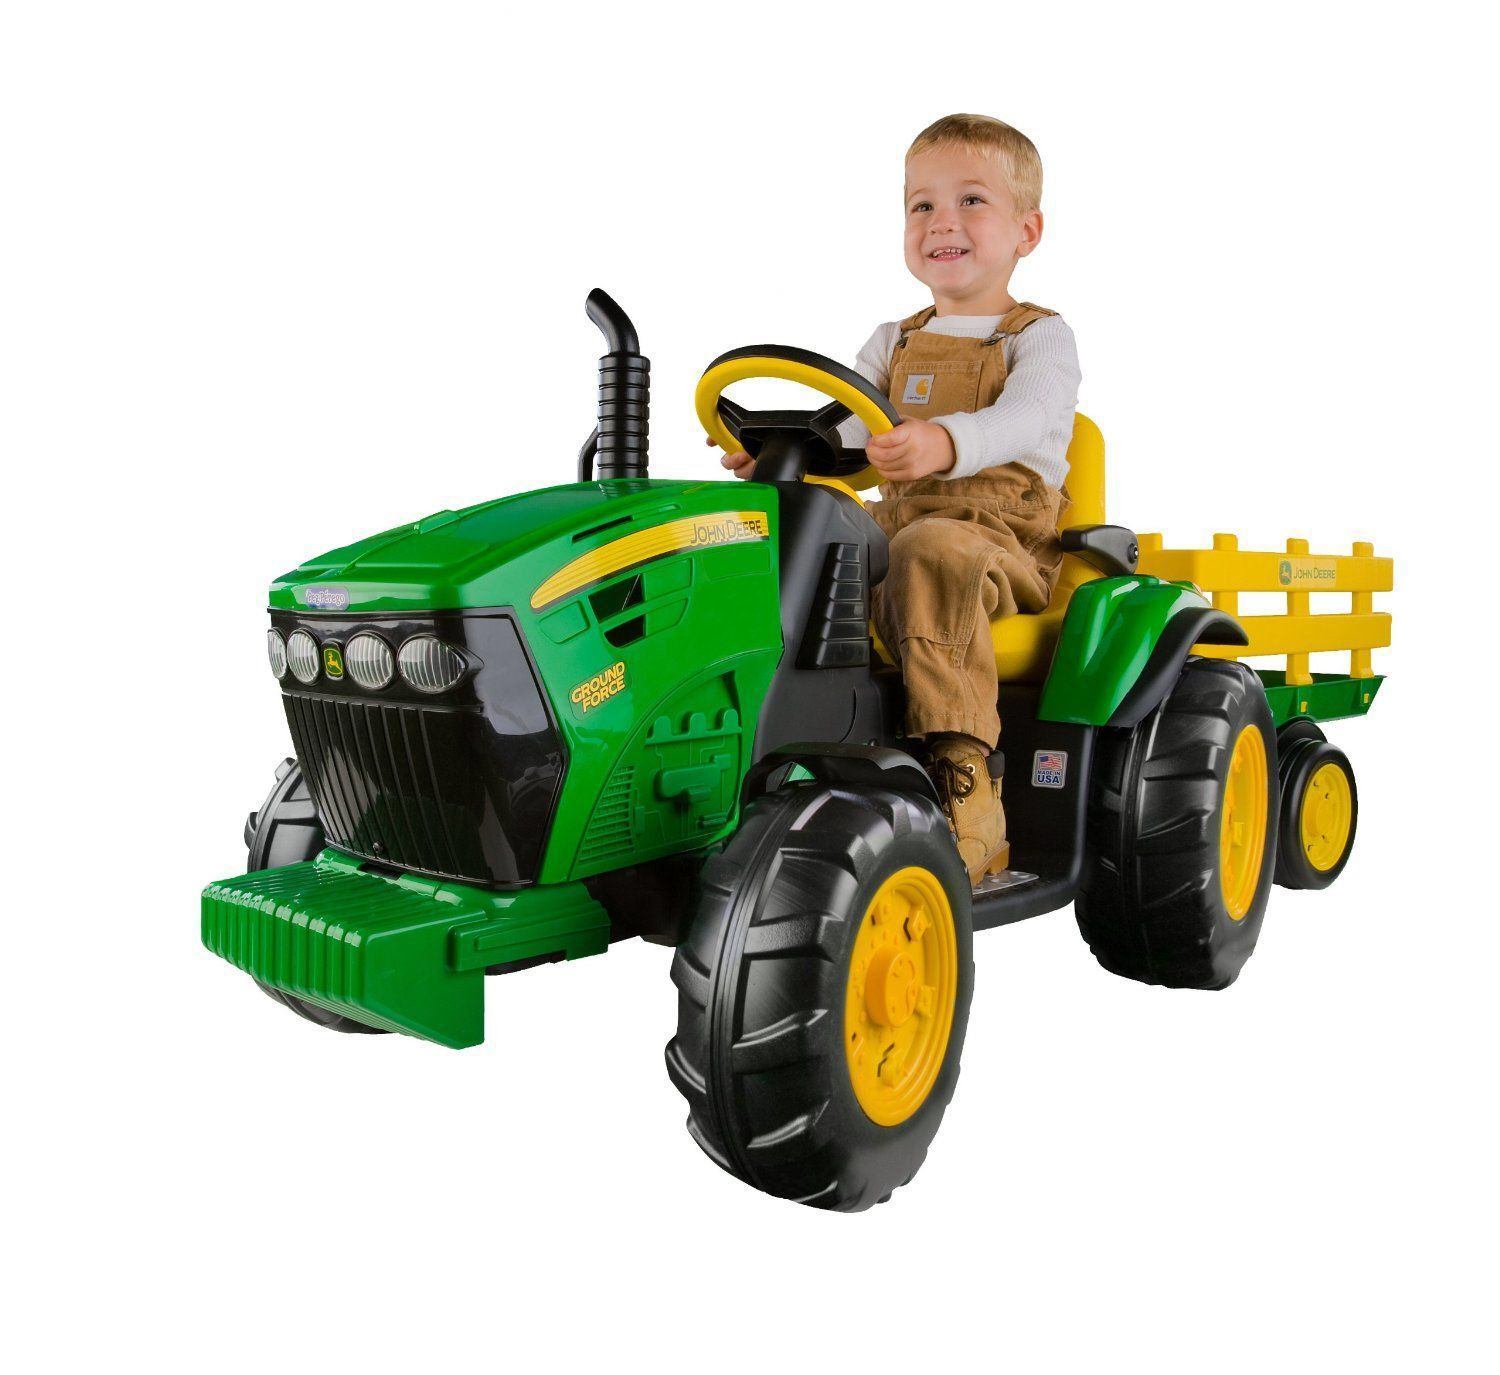 Peg Perego Ground Force 12v Battery Powered Tractor With Trailer Tractors For Kids Kids Ride On Tractors